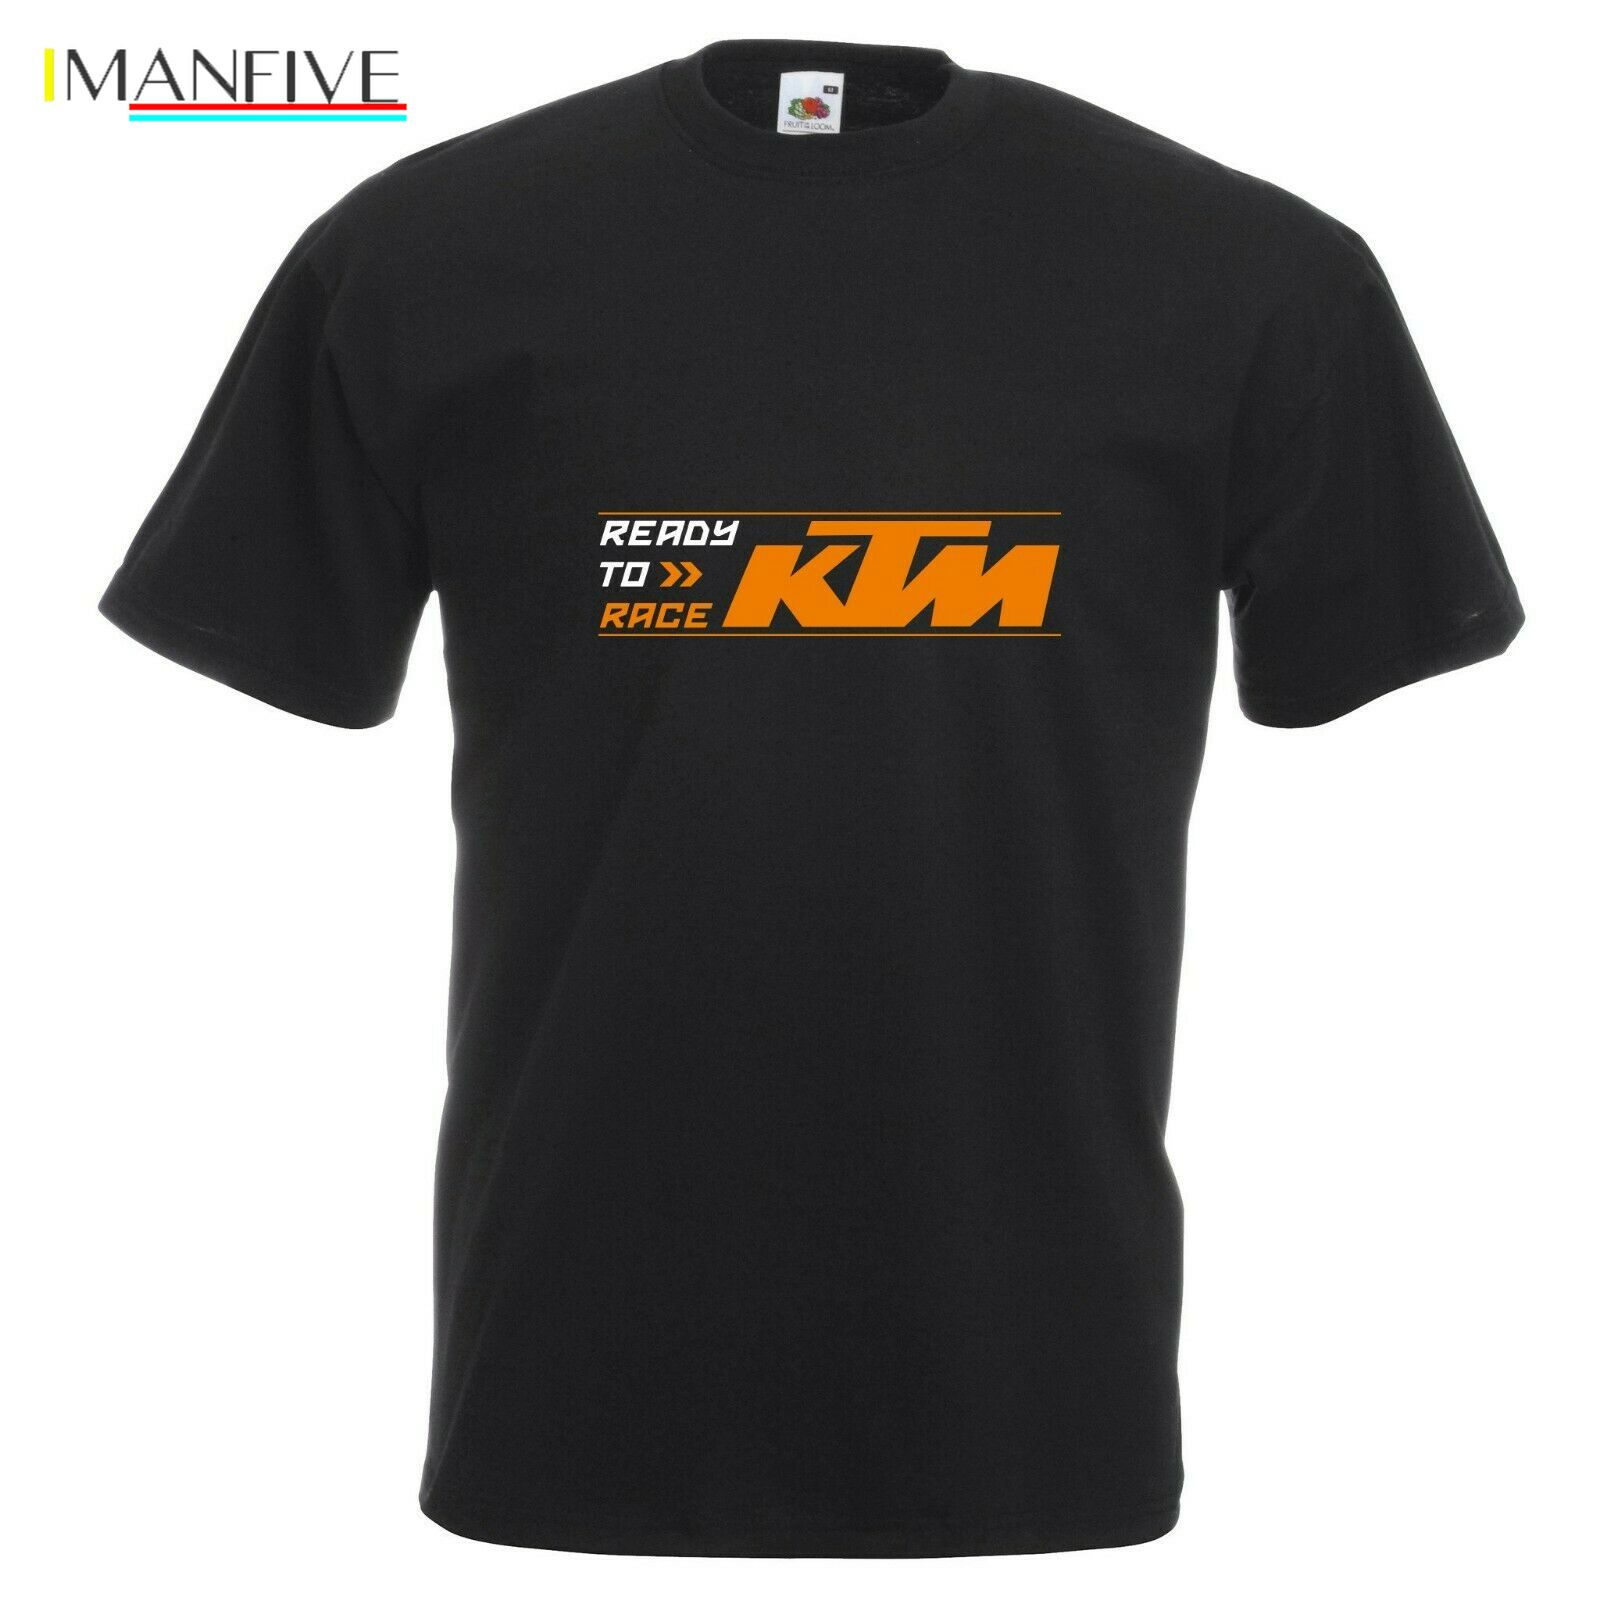 1KTM Ready To Race 1190 990 ADVENTURE R 690 ENDURO R T Shirt Biker Motorcycle Rider Unique Design Tees Summer Men 39 S T Shirts in T Shirts from Men 39 s Clothing